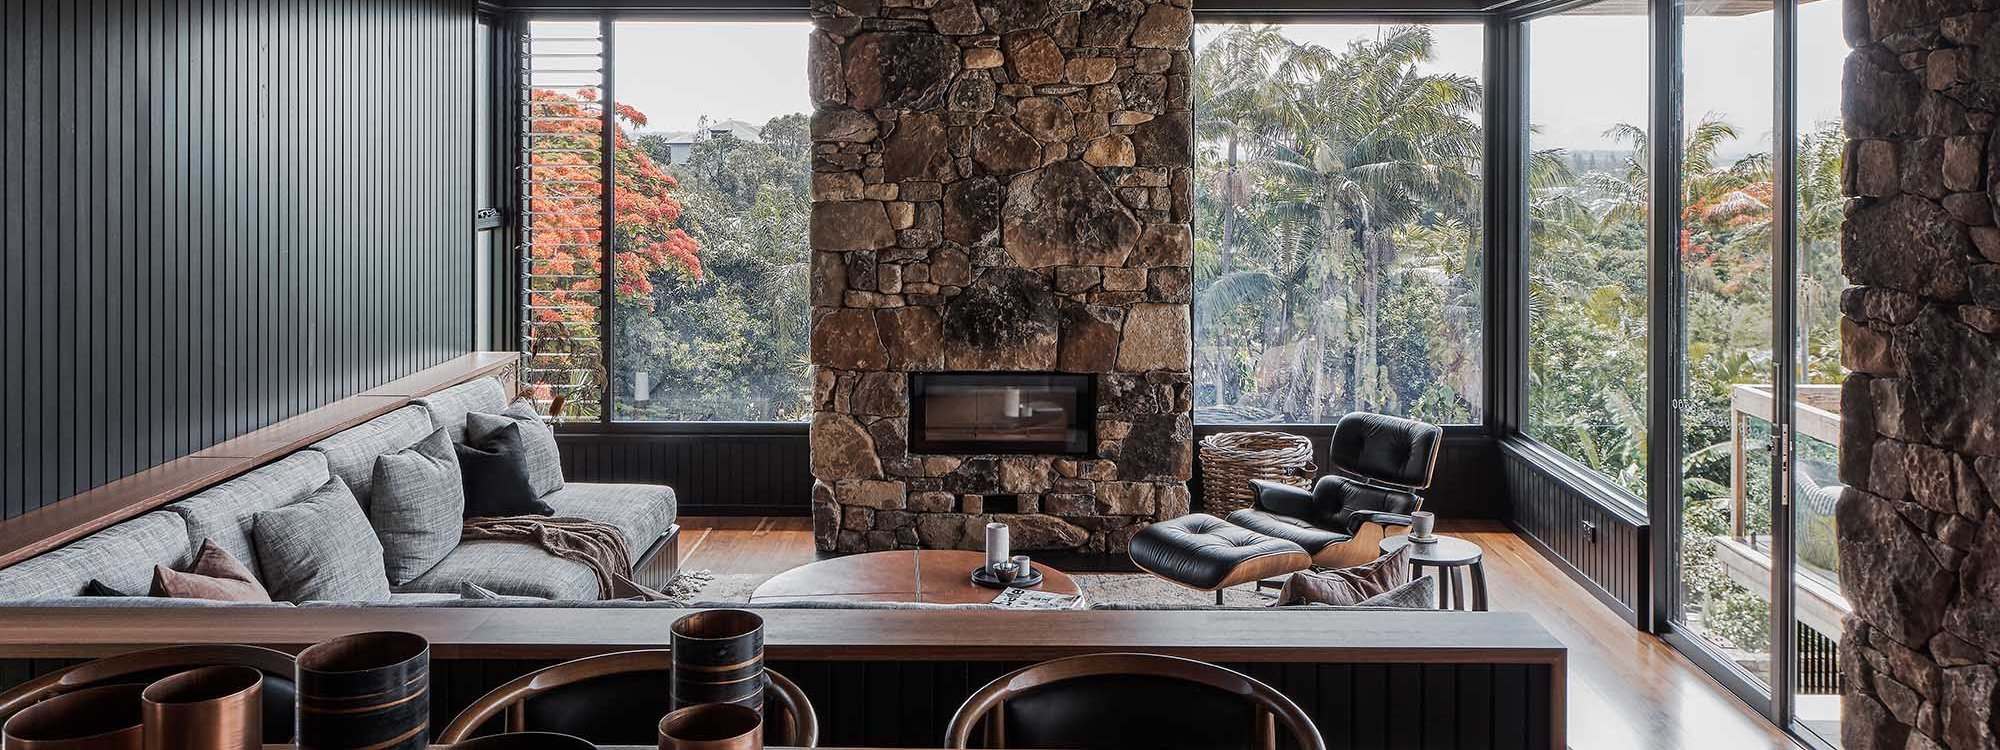 Bay Rock House - Byron Bay - Dining Area and Living Area Looking From Kitchen